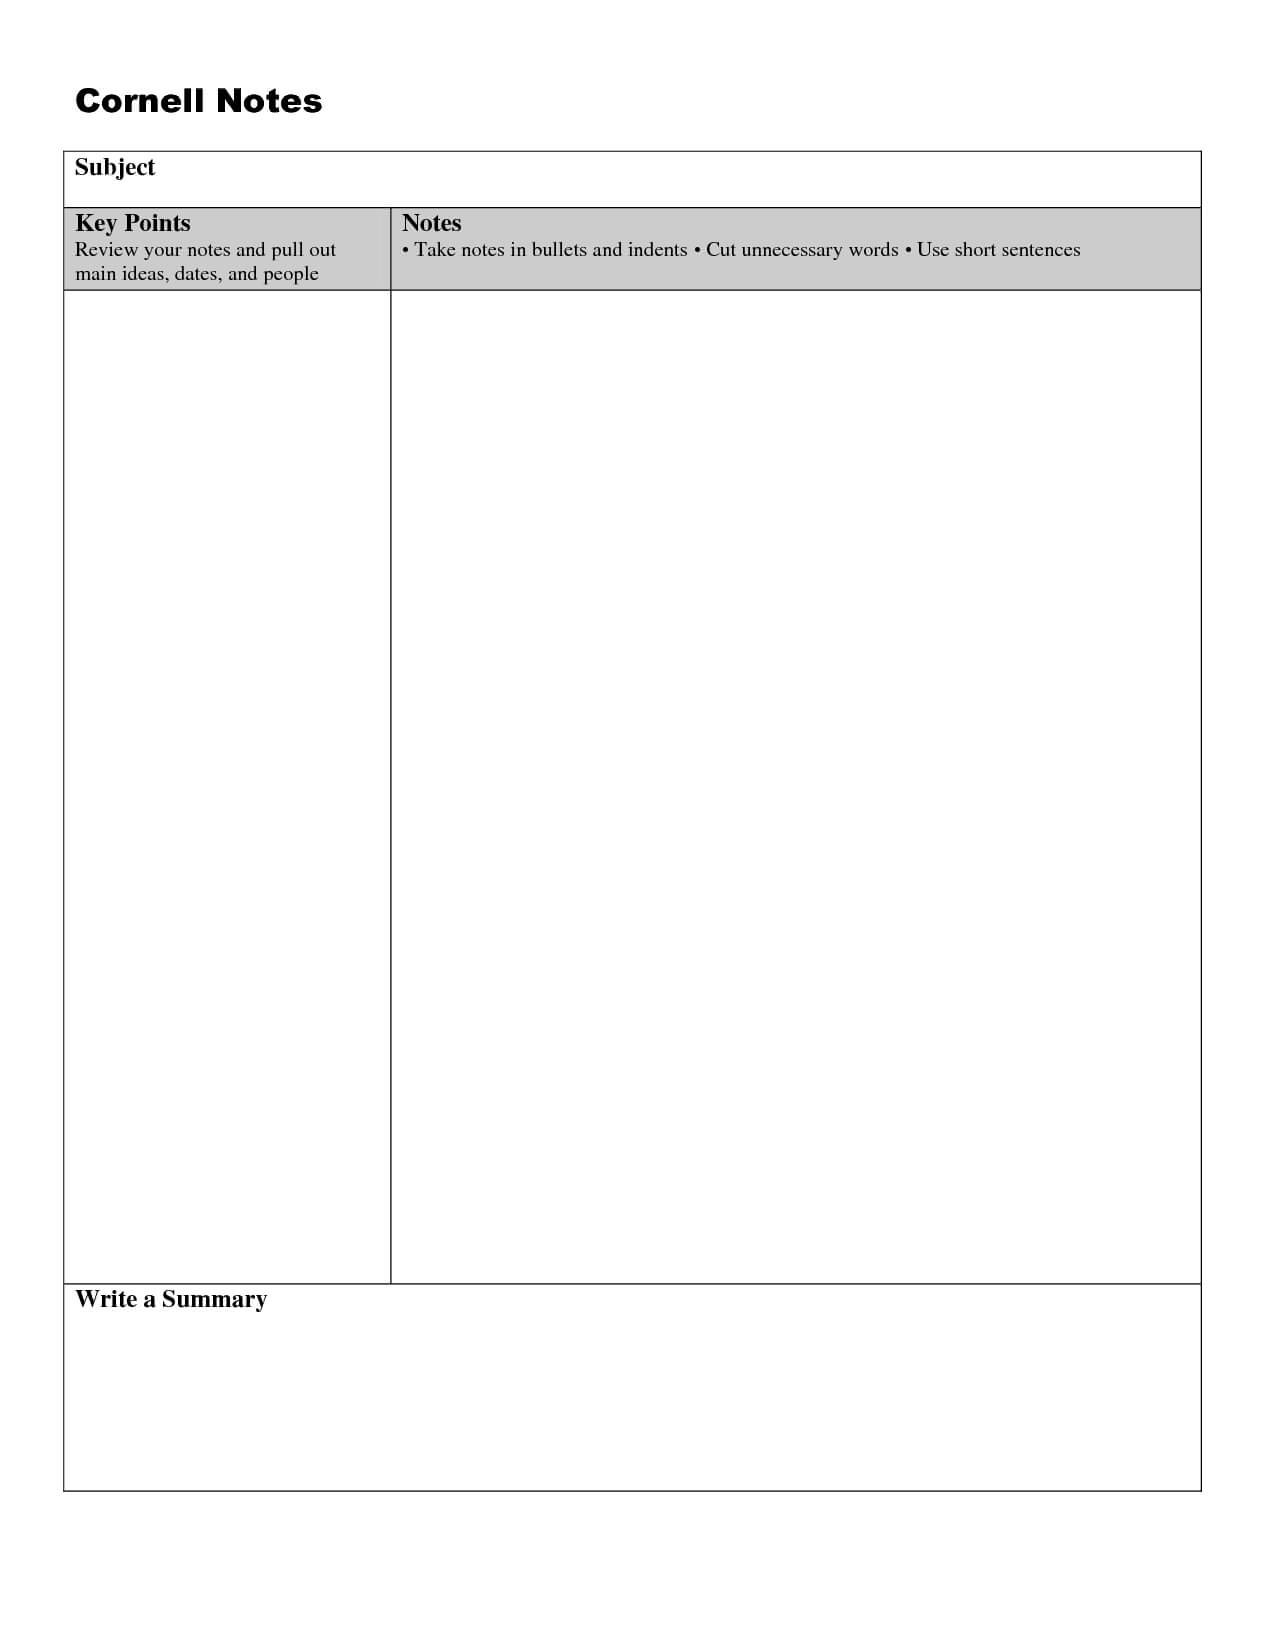 005 Note Taking Template Word Ideas Unforgettable Cornell With Note Taking Template Word